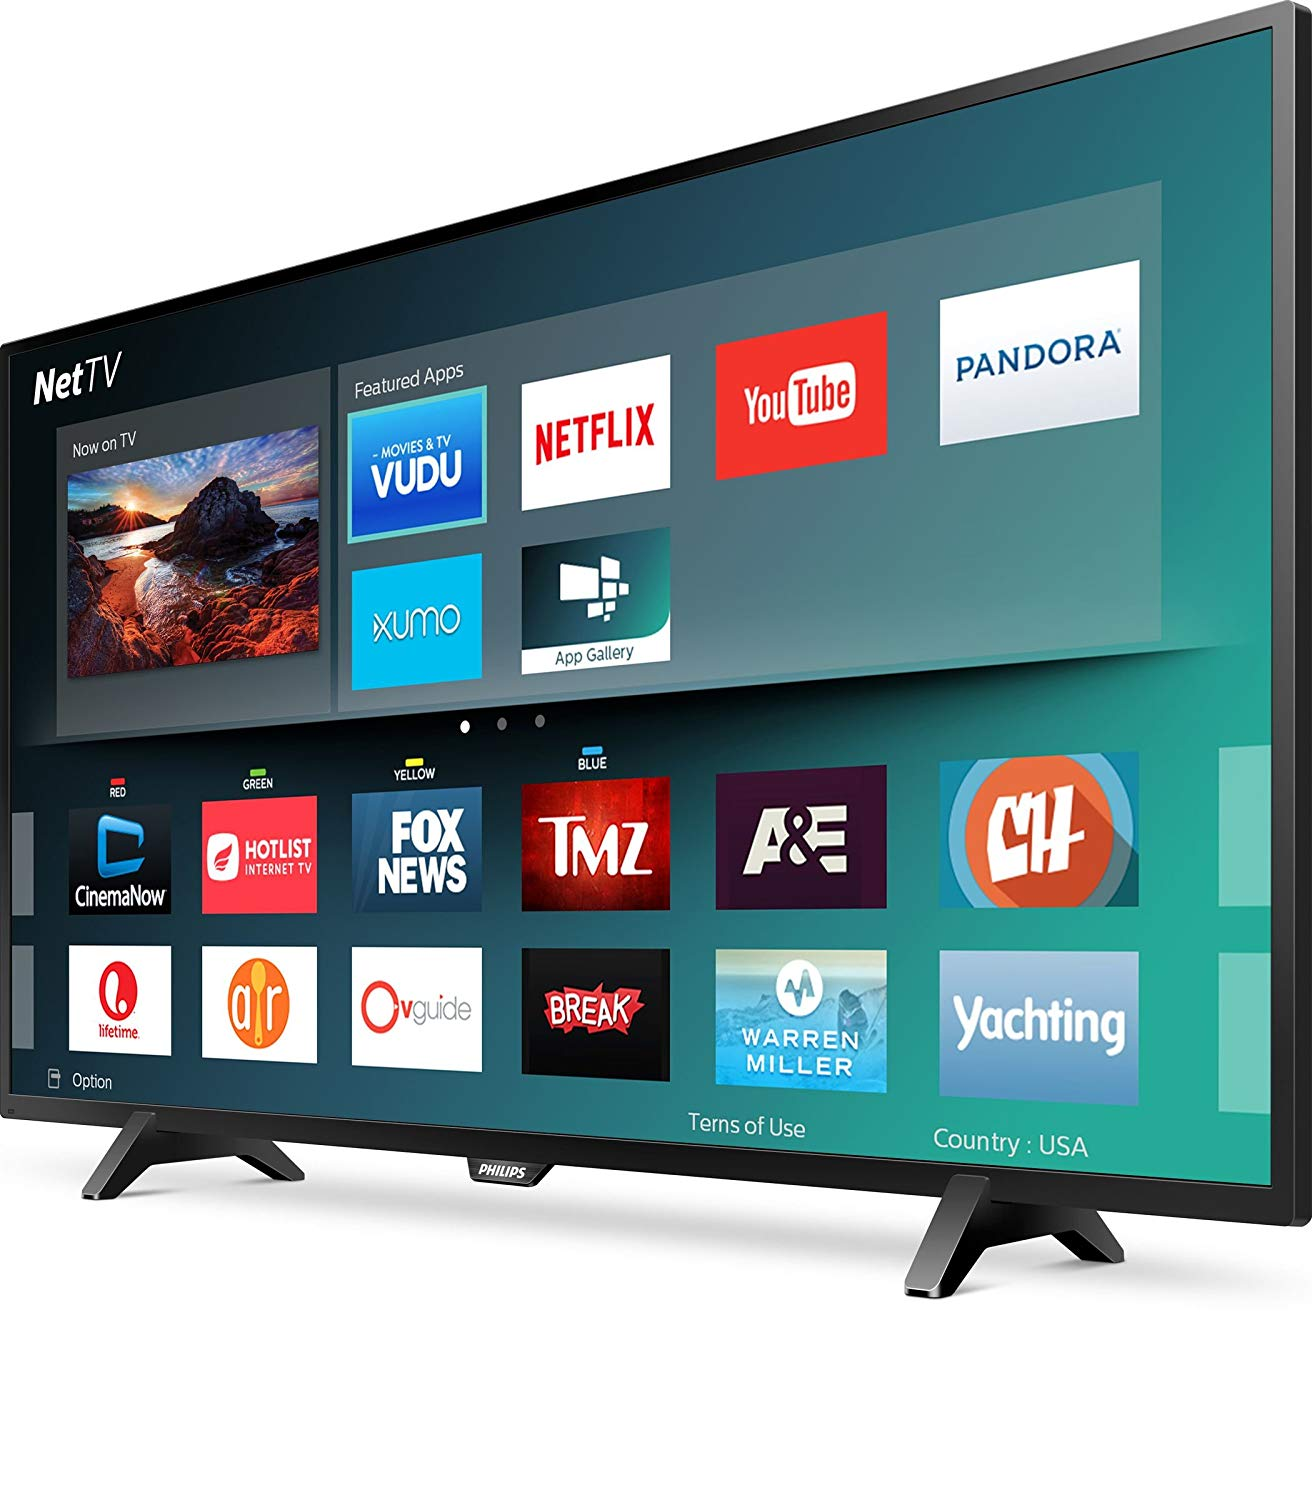 An image related to Philips 43PFL4902 43-Inch FHD LED Smart TV